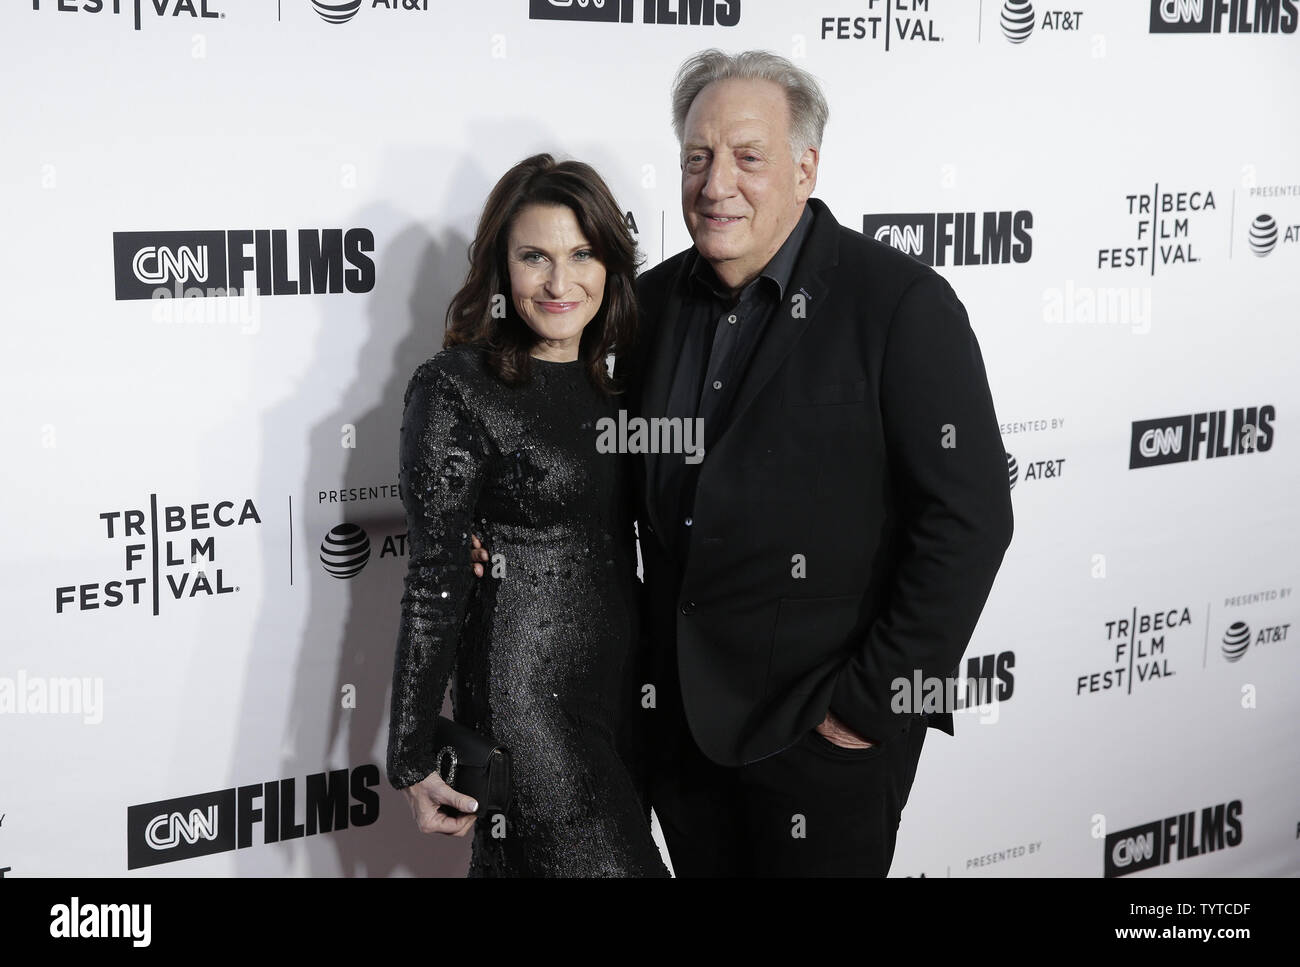 Alan Zweibel and Robin Zweibel arrive on the red carpet at the Opening Night Gala of 'Love, Gilda' as part of 2018 Tribeca Film Festival at the Beacon Theatre on April 18, 2018 in New York City.   Photo by John Angelillo/UPI - Stock Image